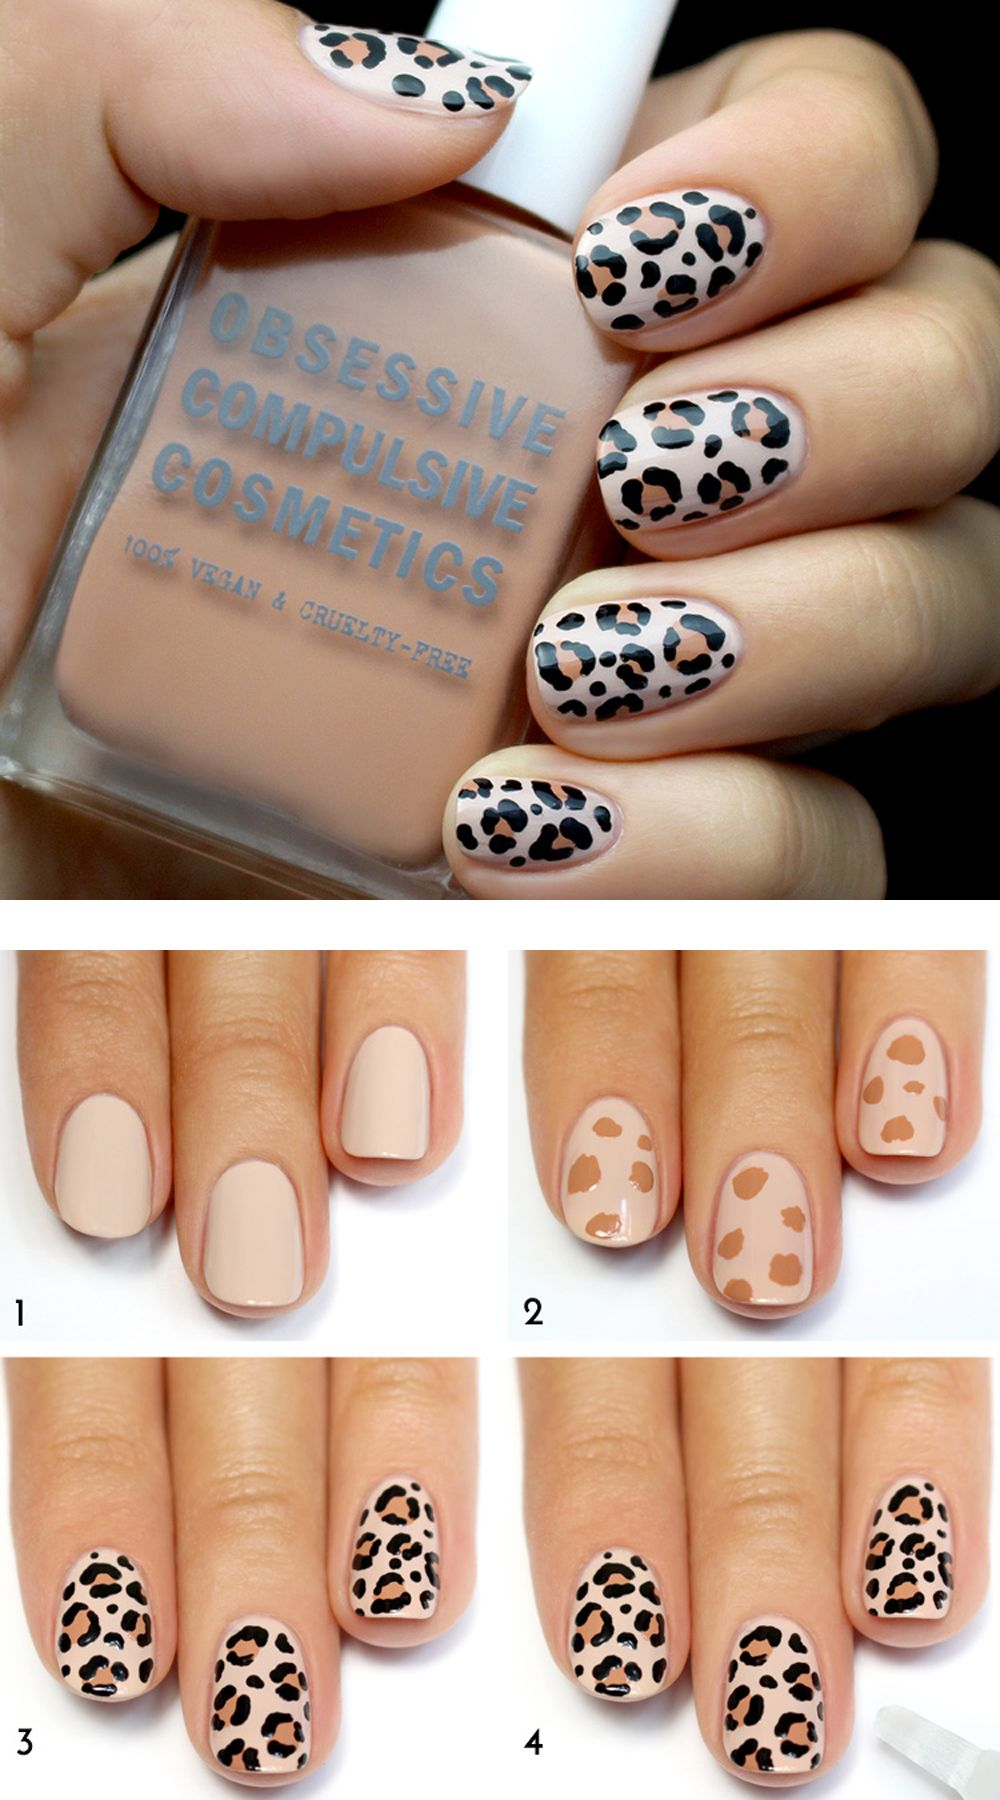 4 Nail Designs That Seem Tricky But Aren\'t | Design tutorials, Art ...